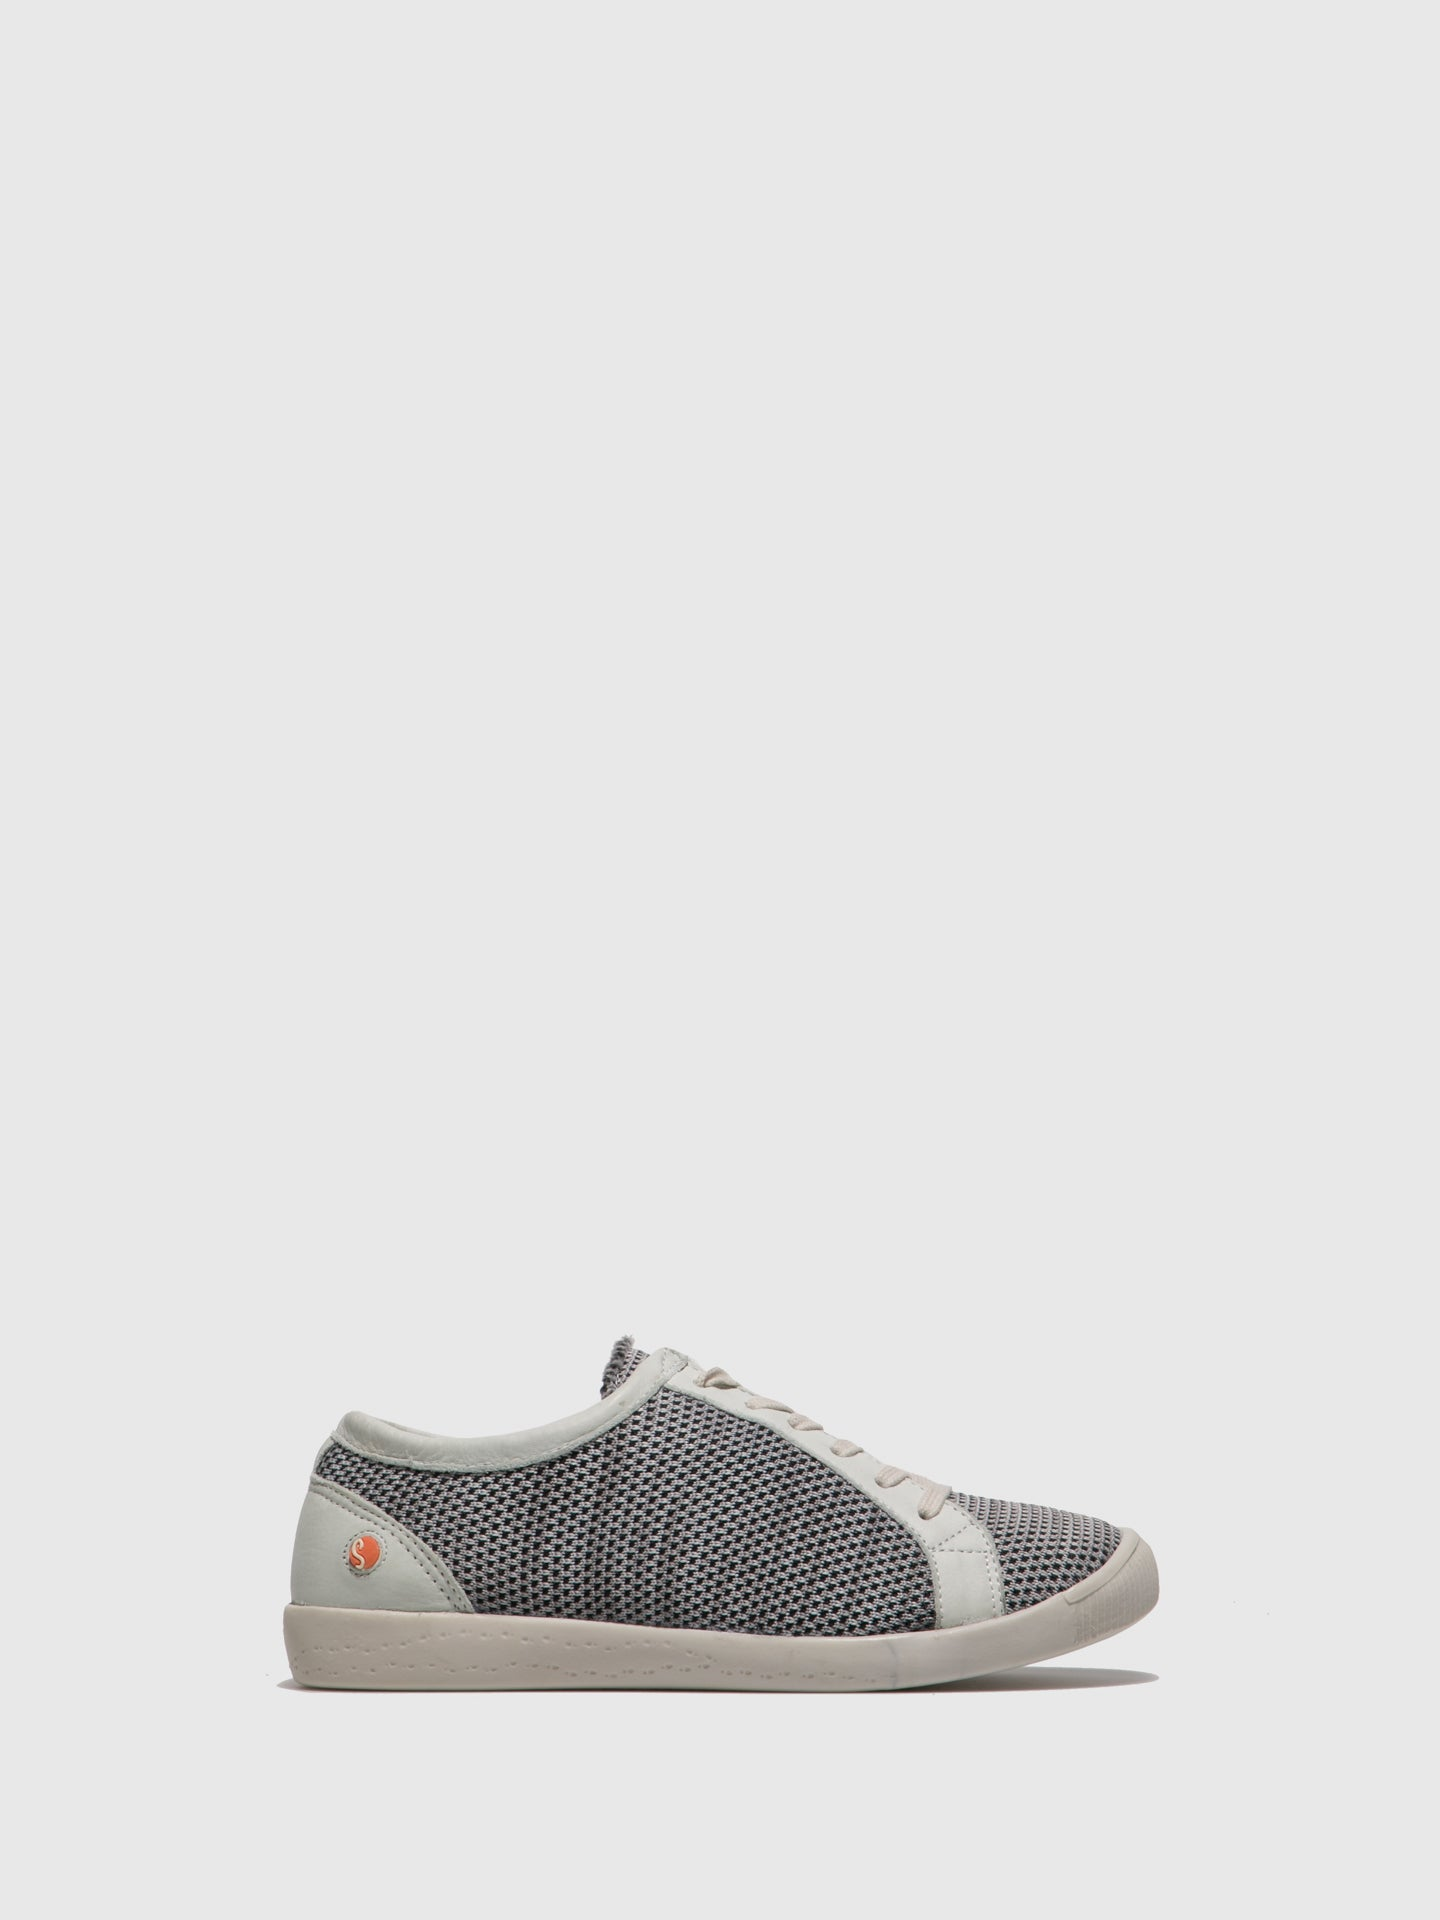 SOFTINOS Lace-up Trainers ICA388SOF Grey/White